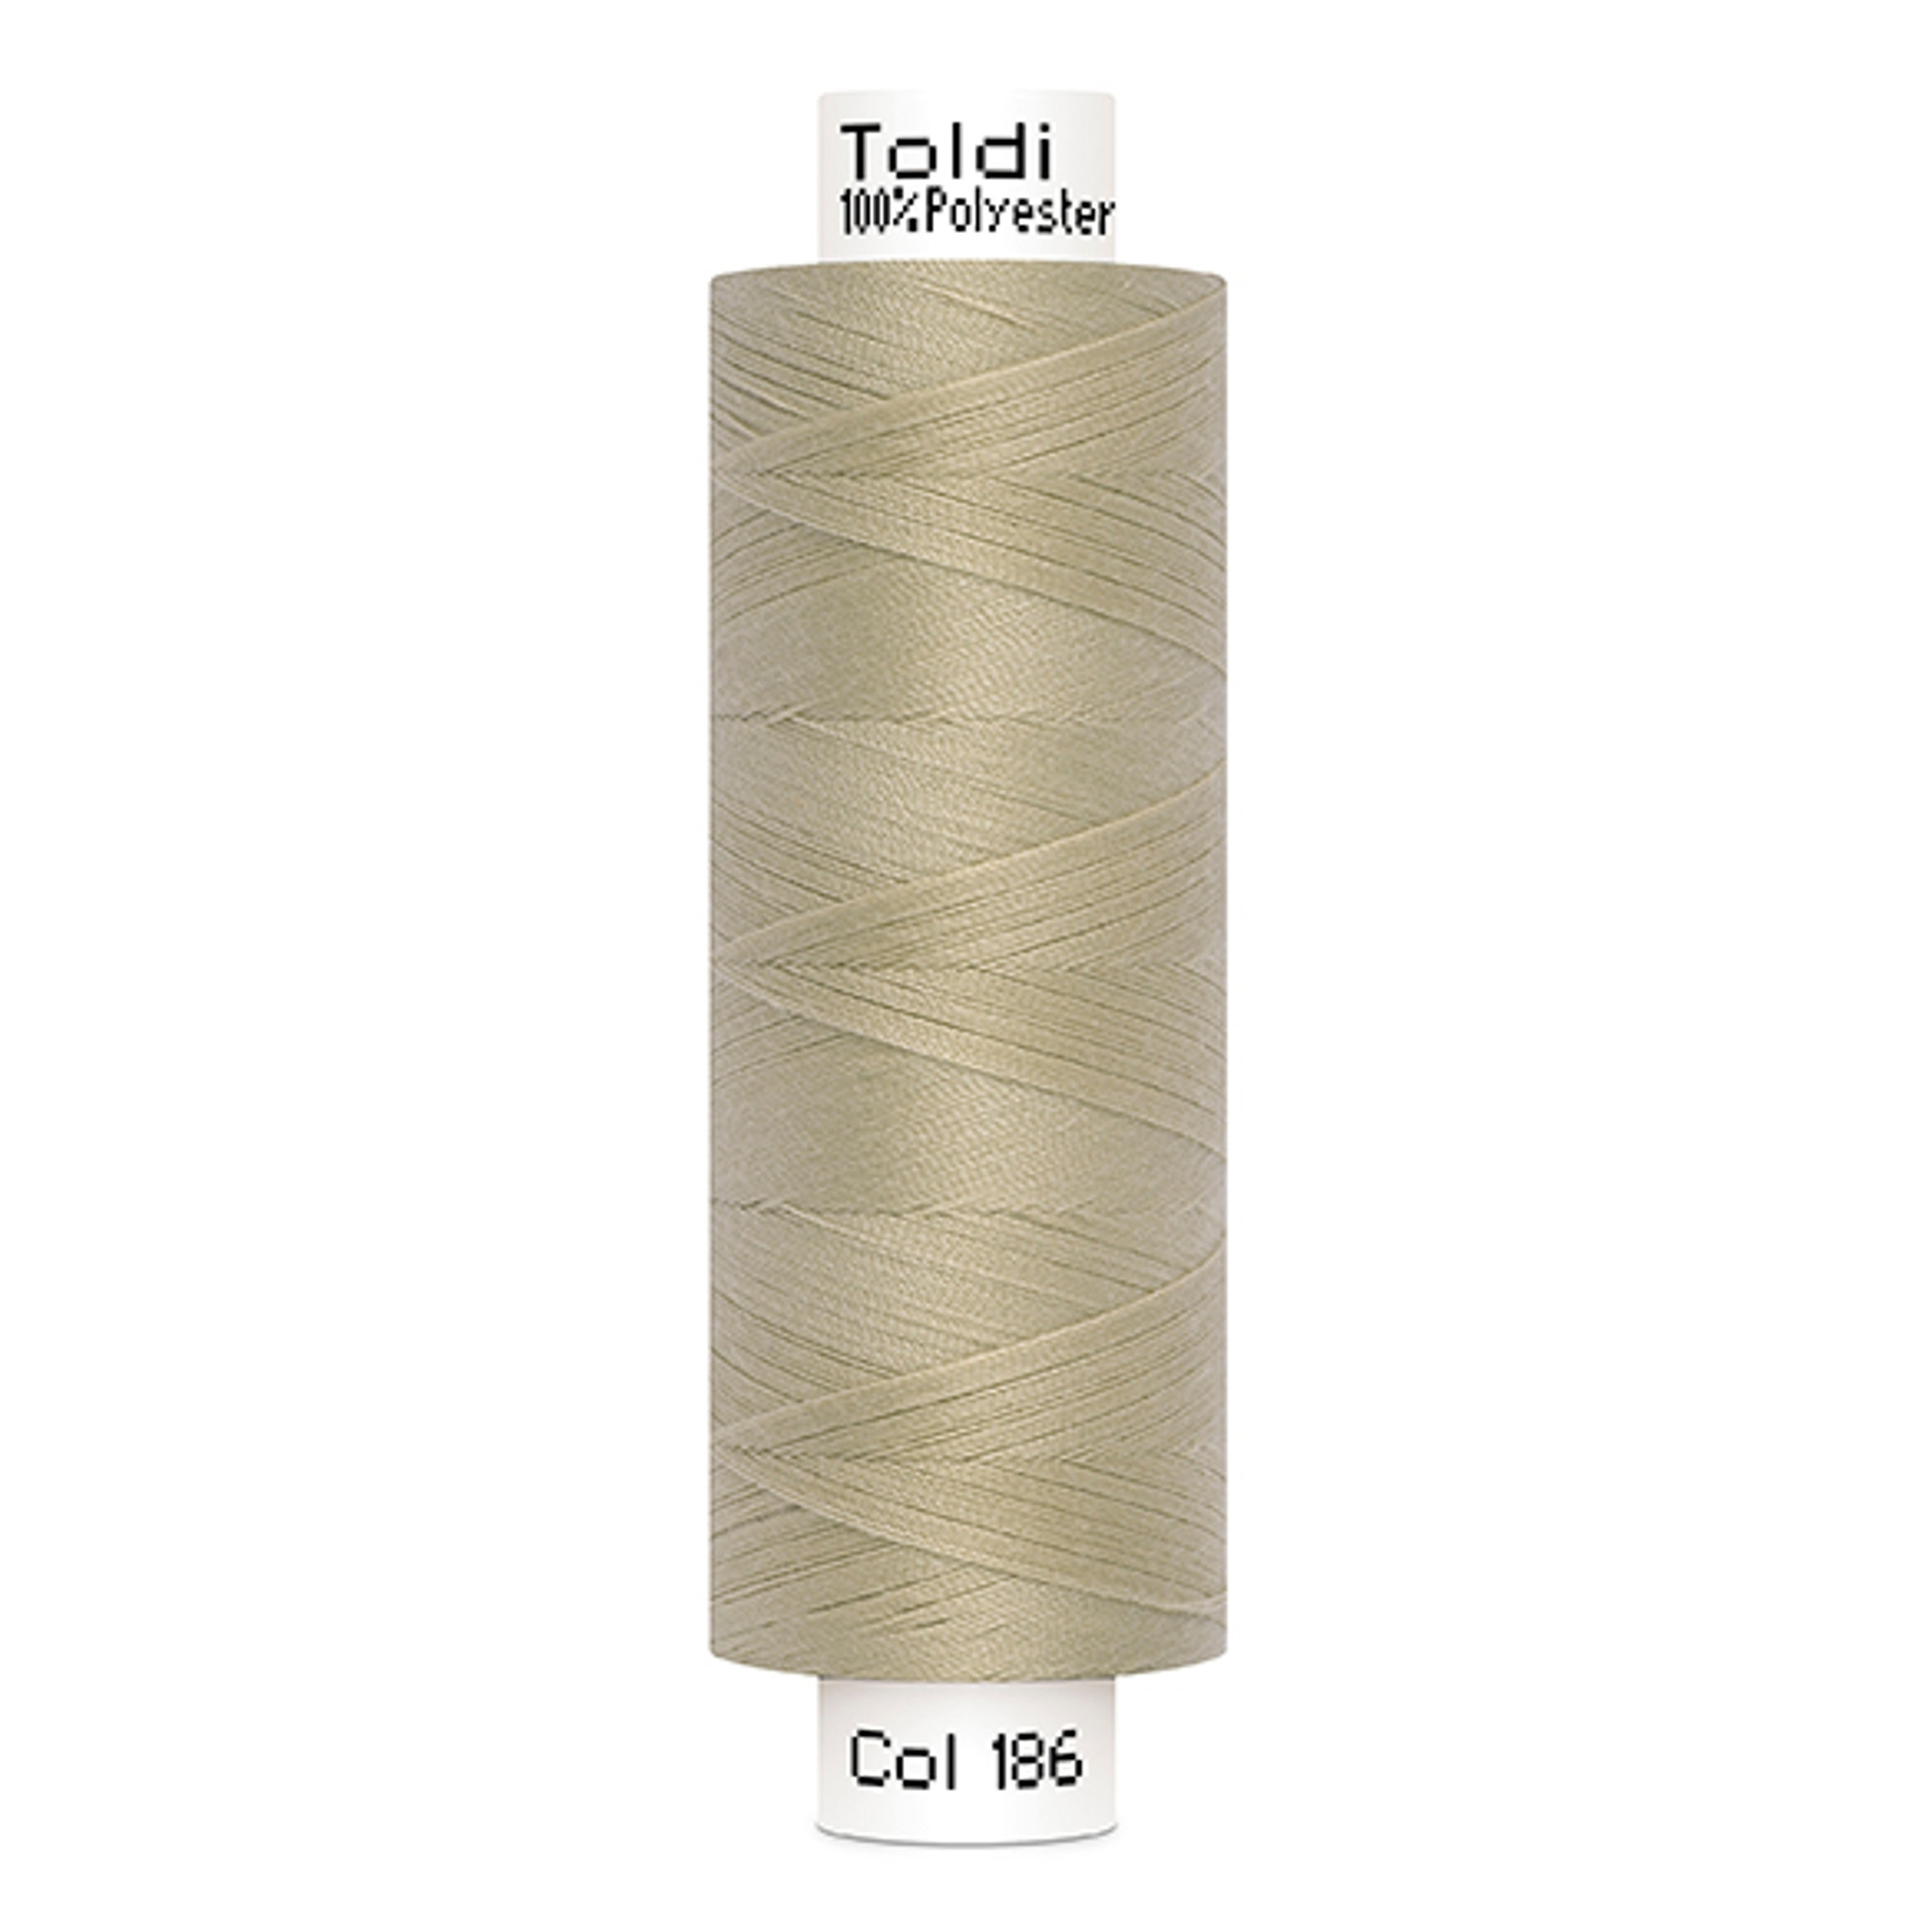 Gütermann Toldi Sewing Thread, 500 m beige | 707589-186 | beige